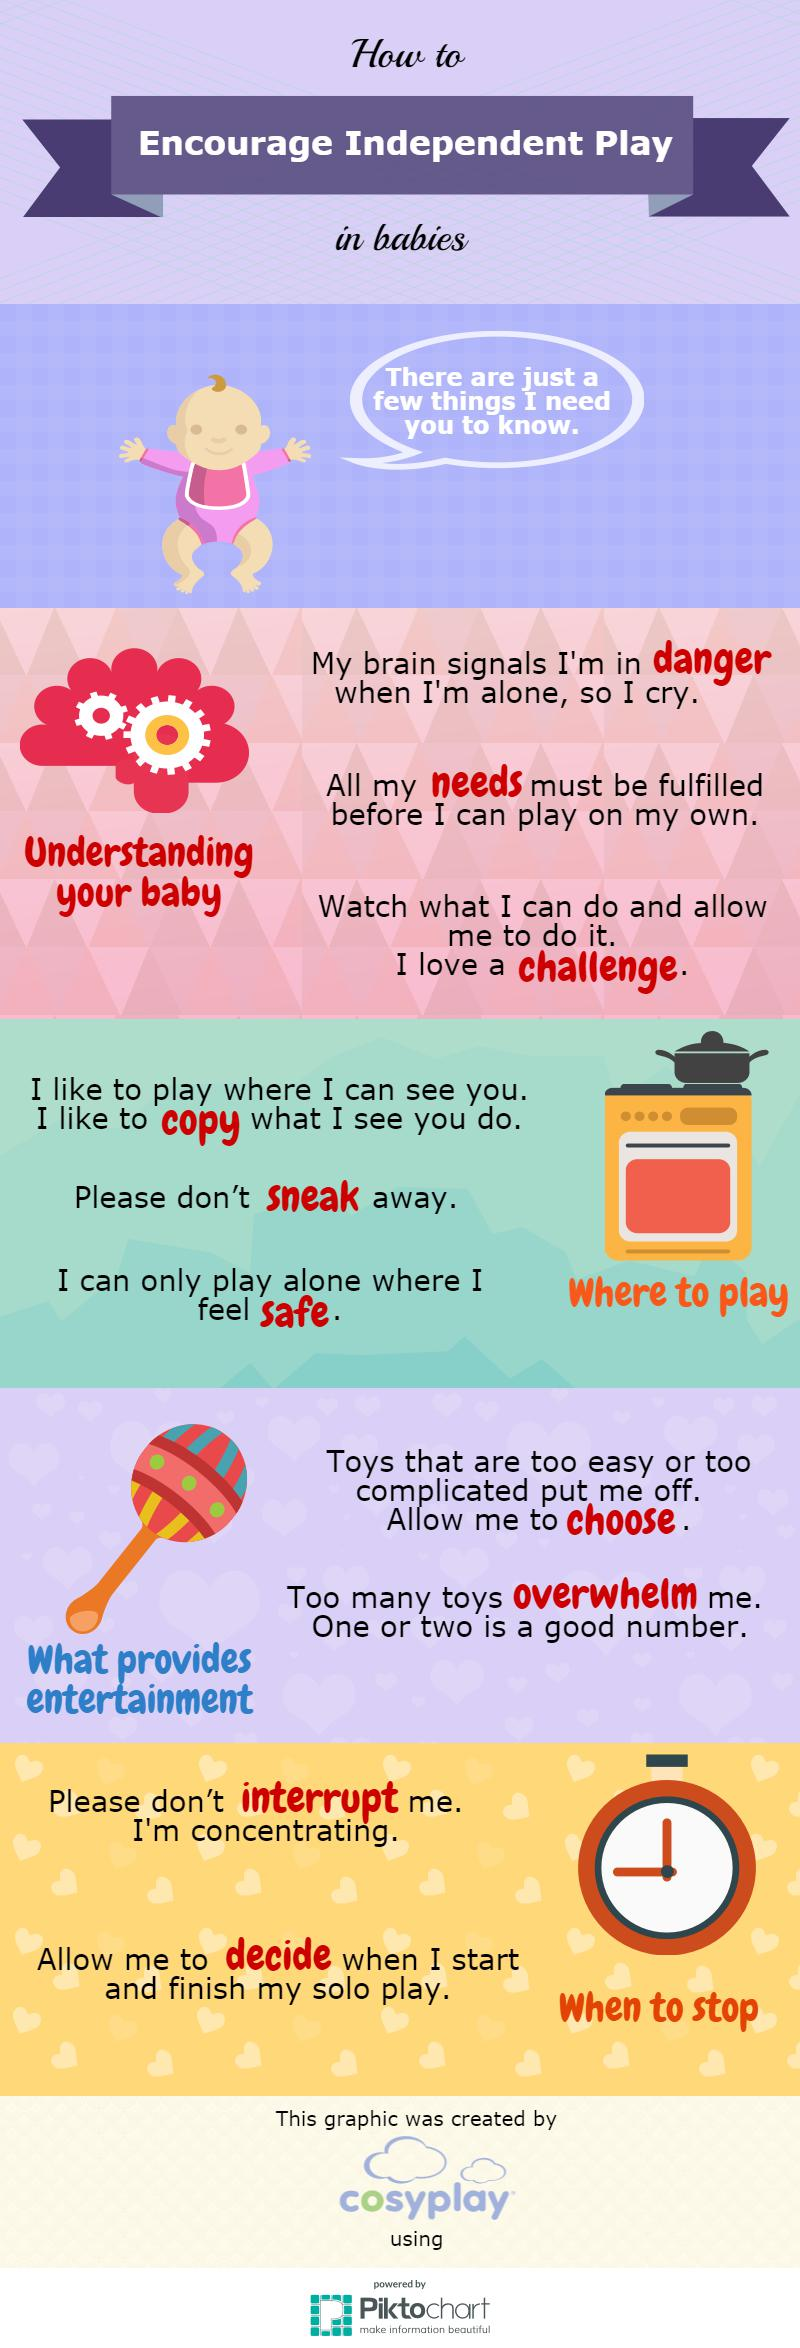 Independent play for babies tips